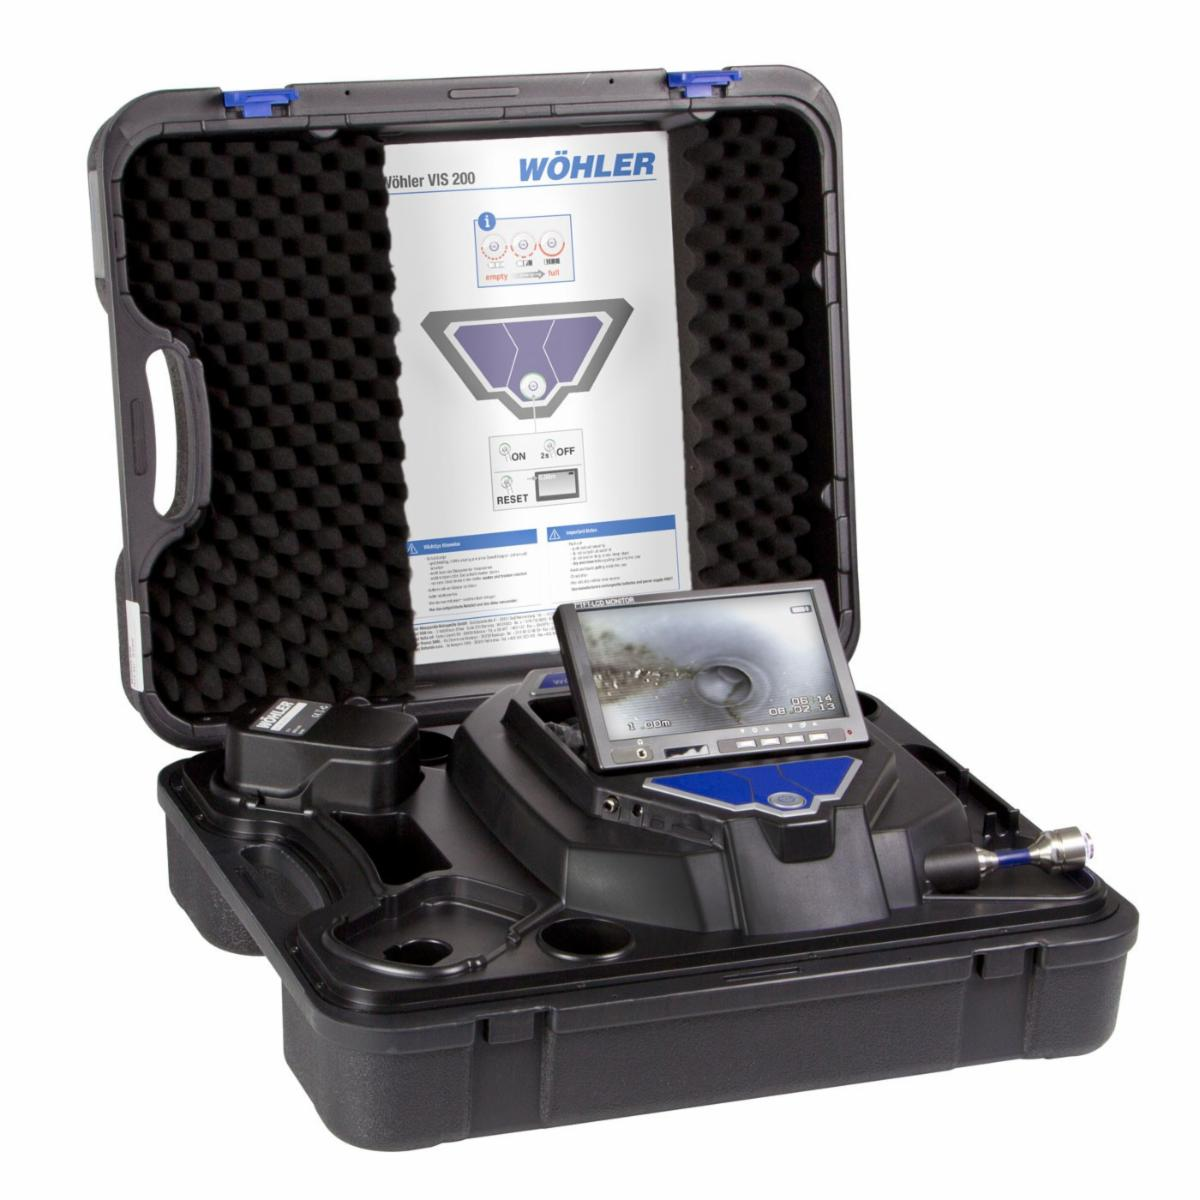 WOHLER VIS 200 INSPECTION CAMERA WITH CAMERA HEAD 1-IN